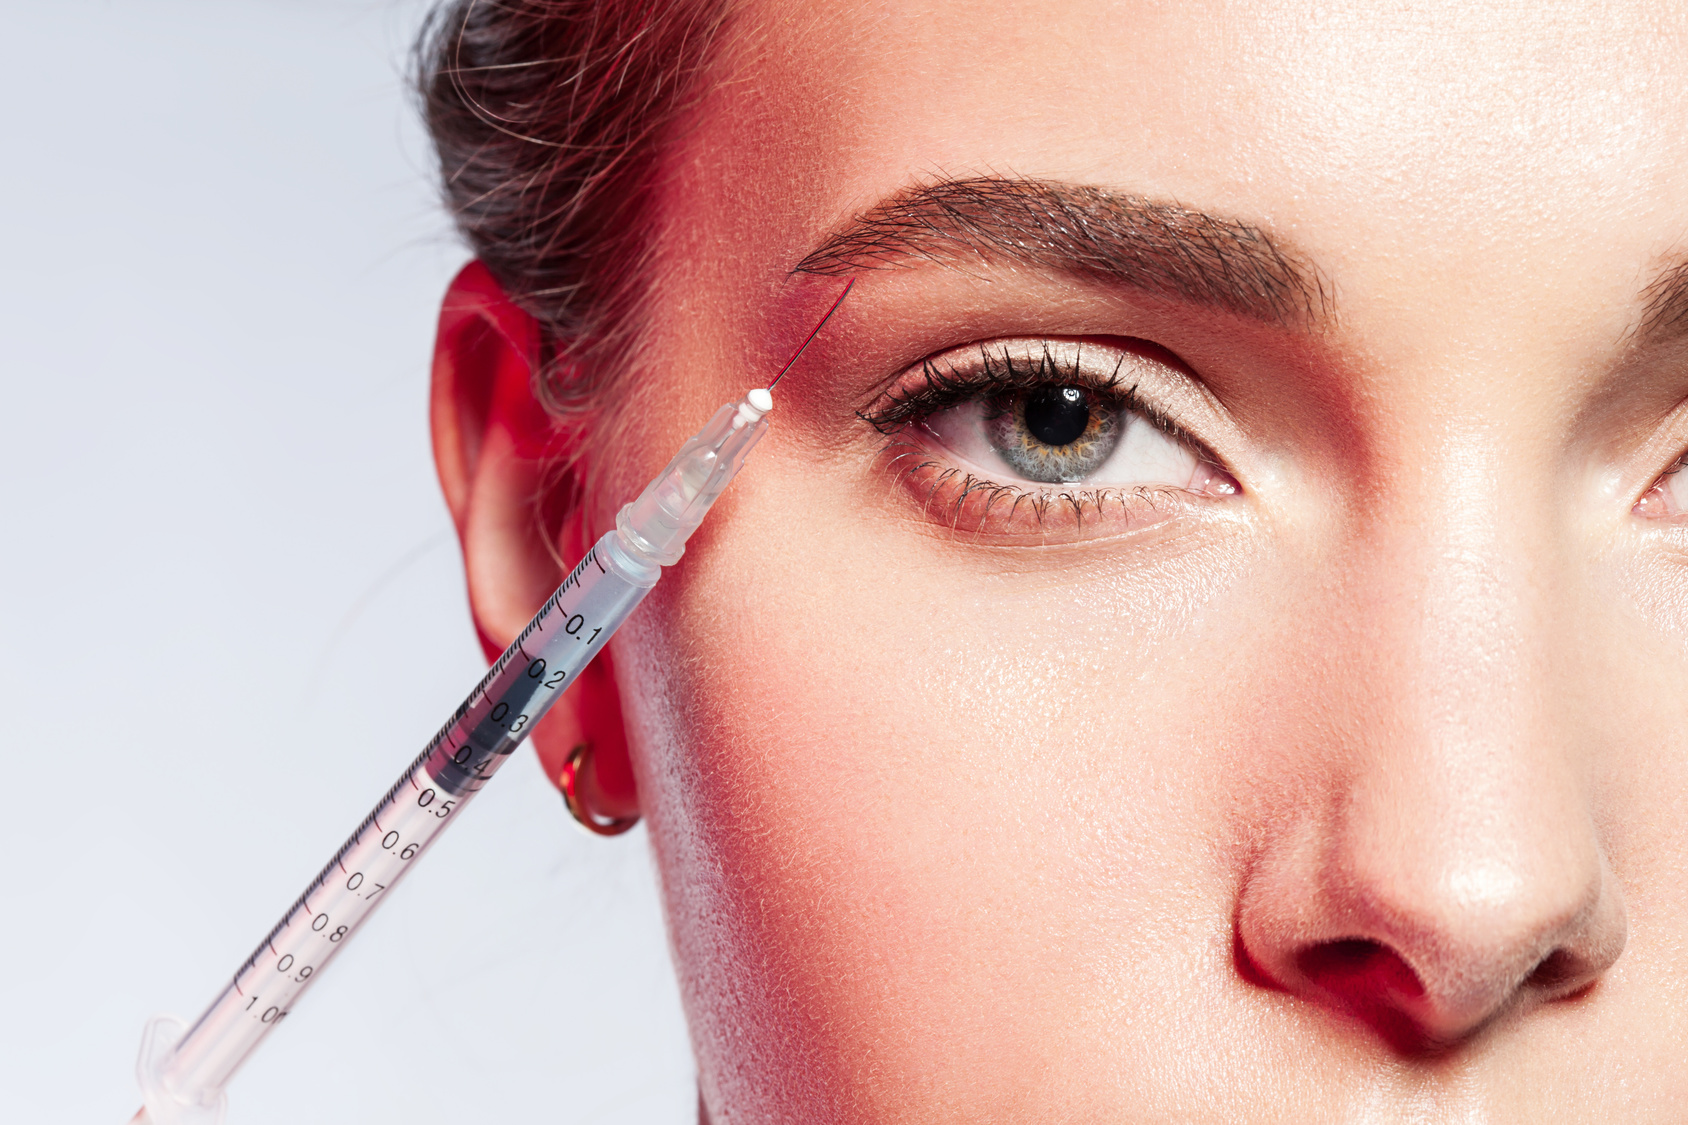 close-up of a woman doing an injection under the eyebrow